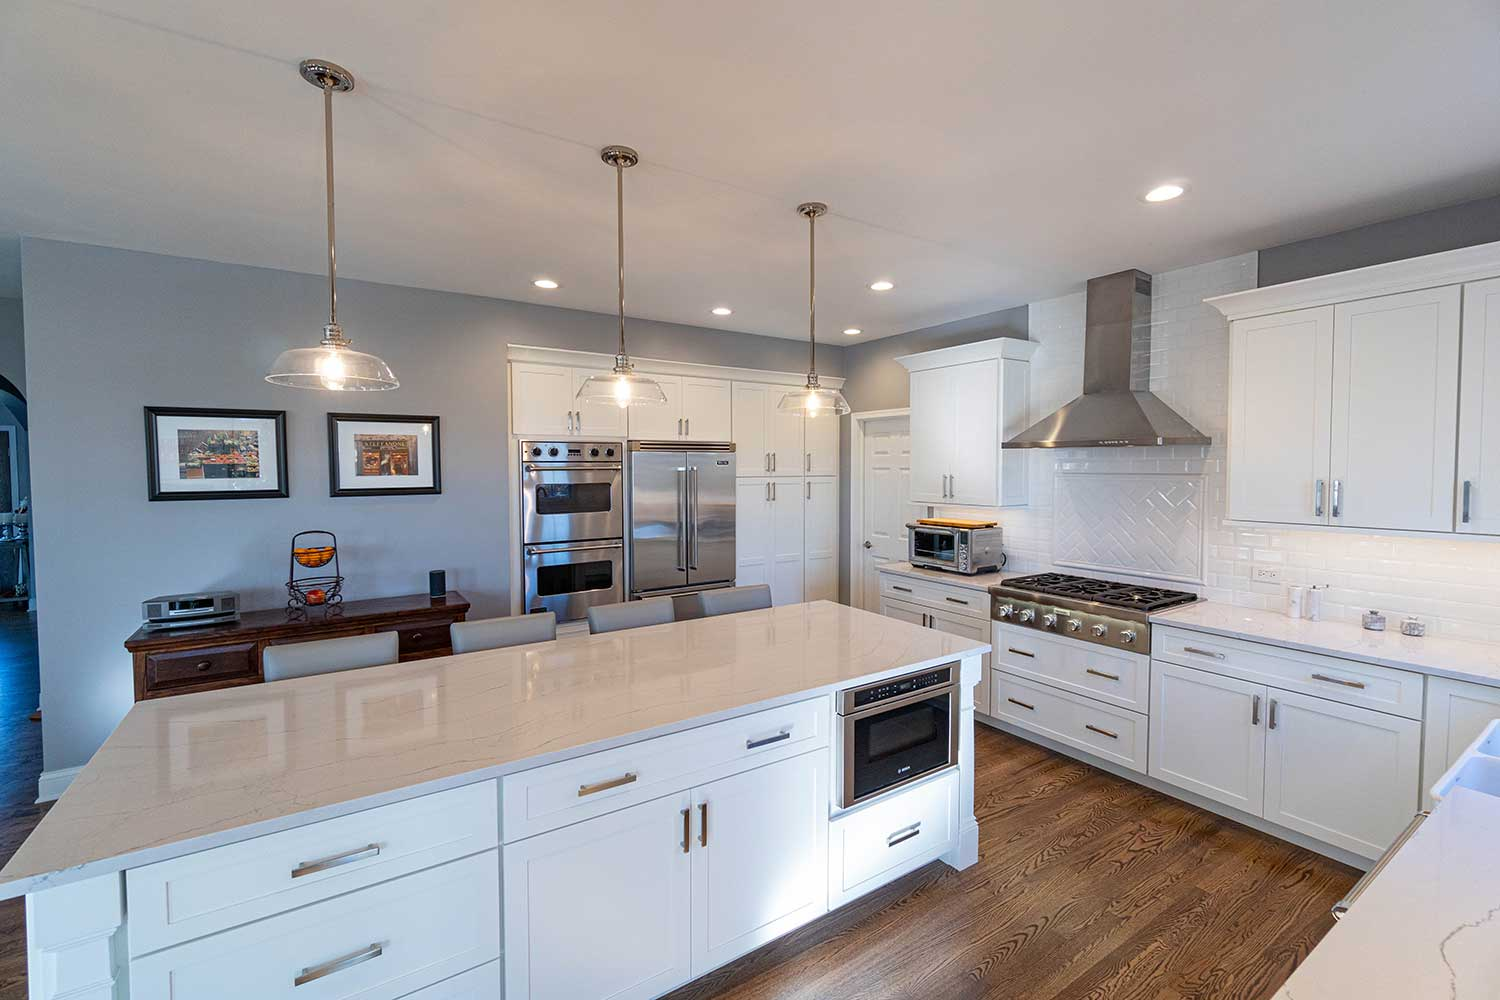 Marble island with oven and white cabinets